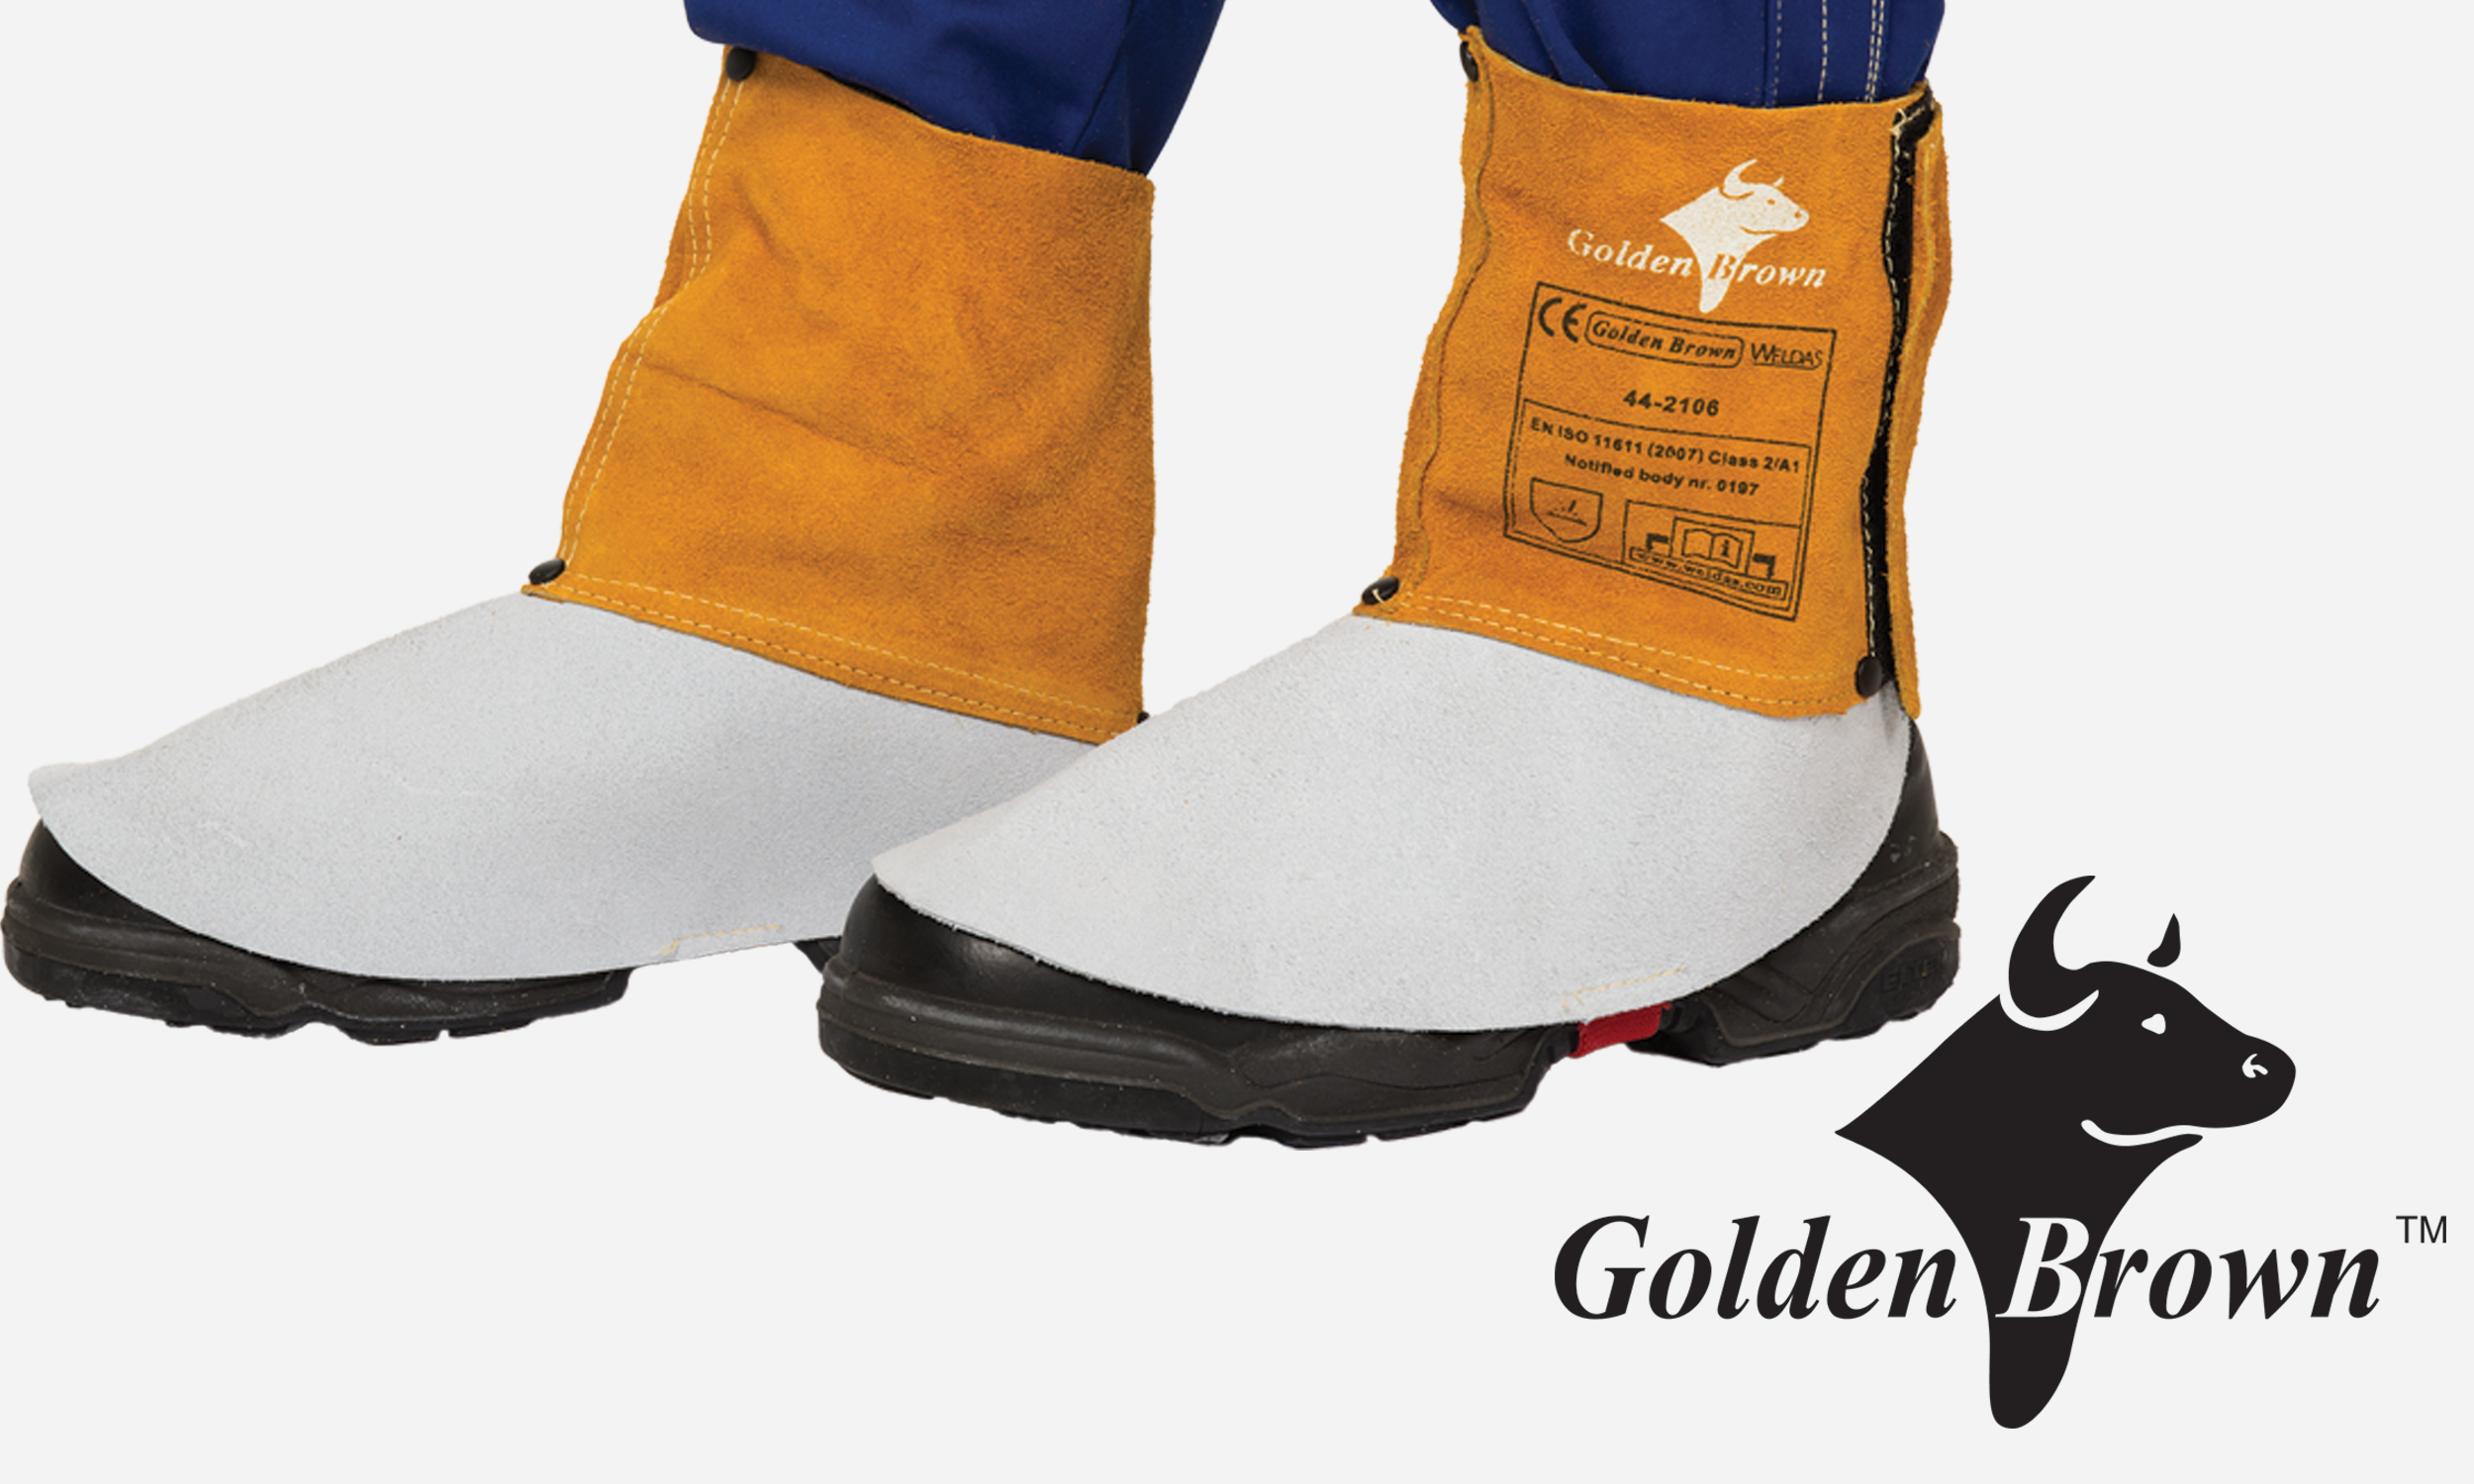 44-2106 Leather Spats.png